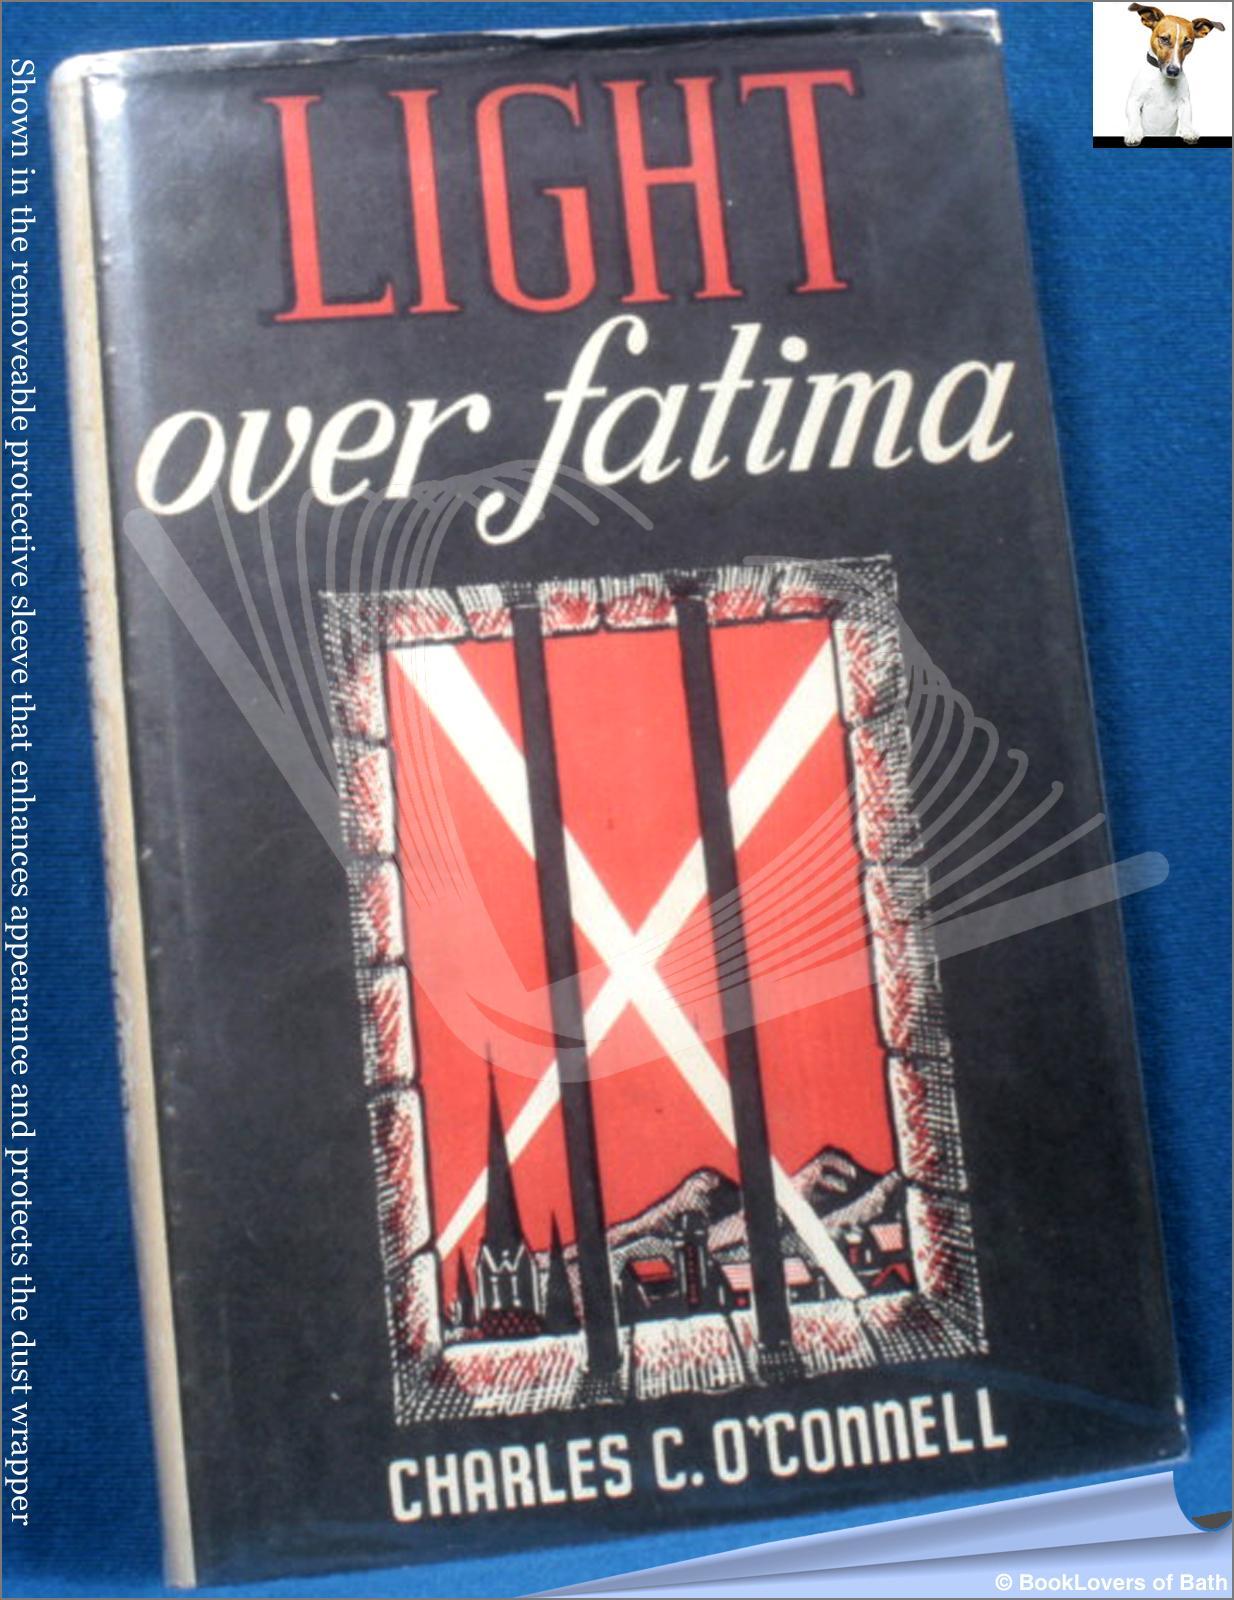 Light Over Fatima - Charles C. [Christopher] Connell